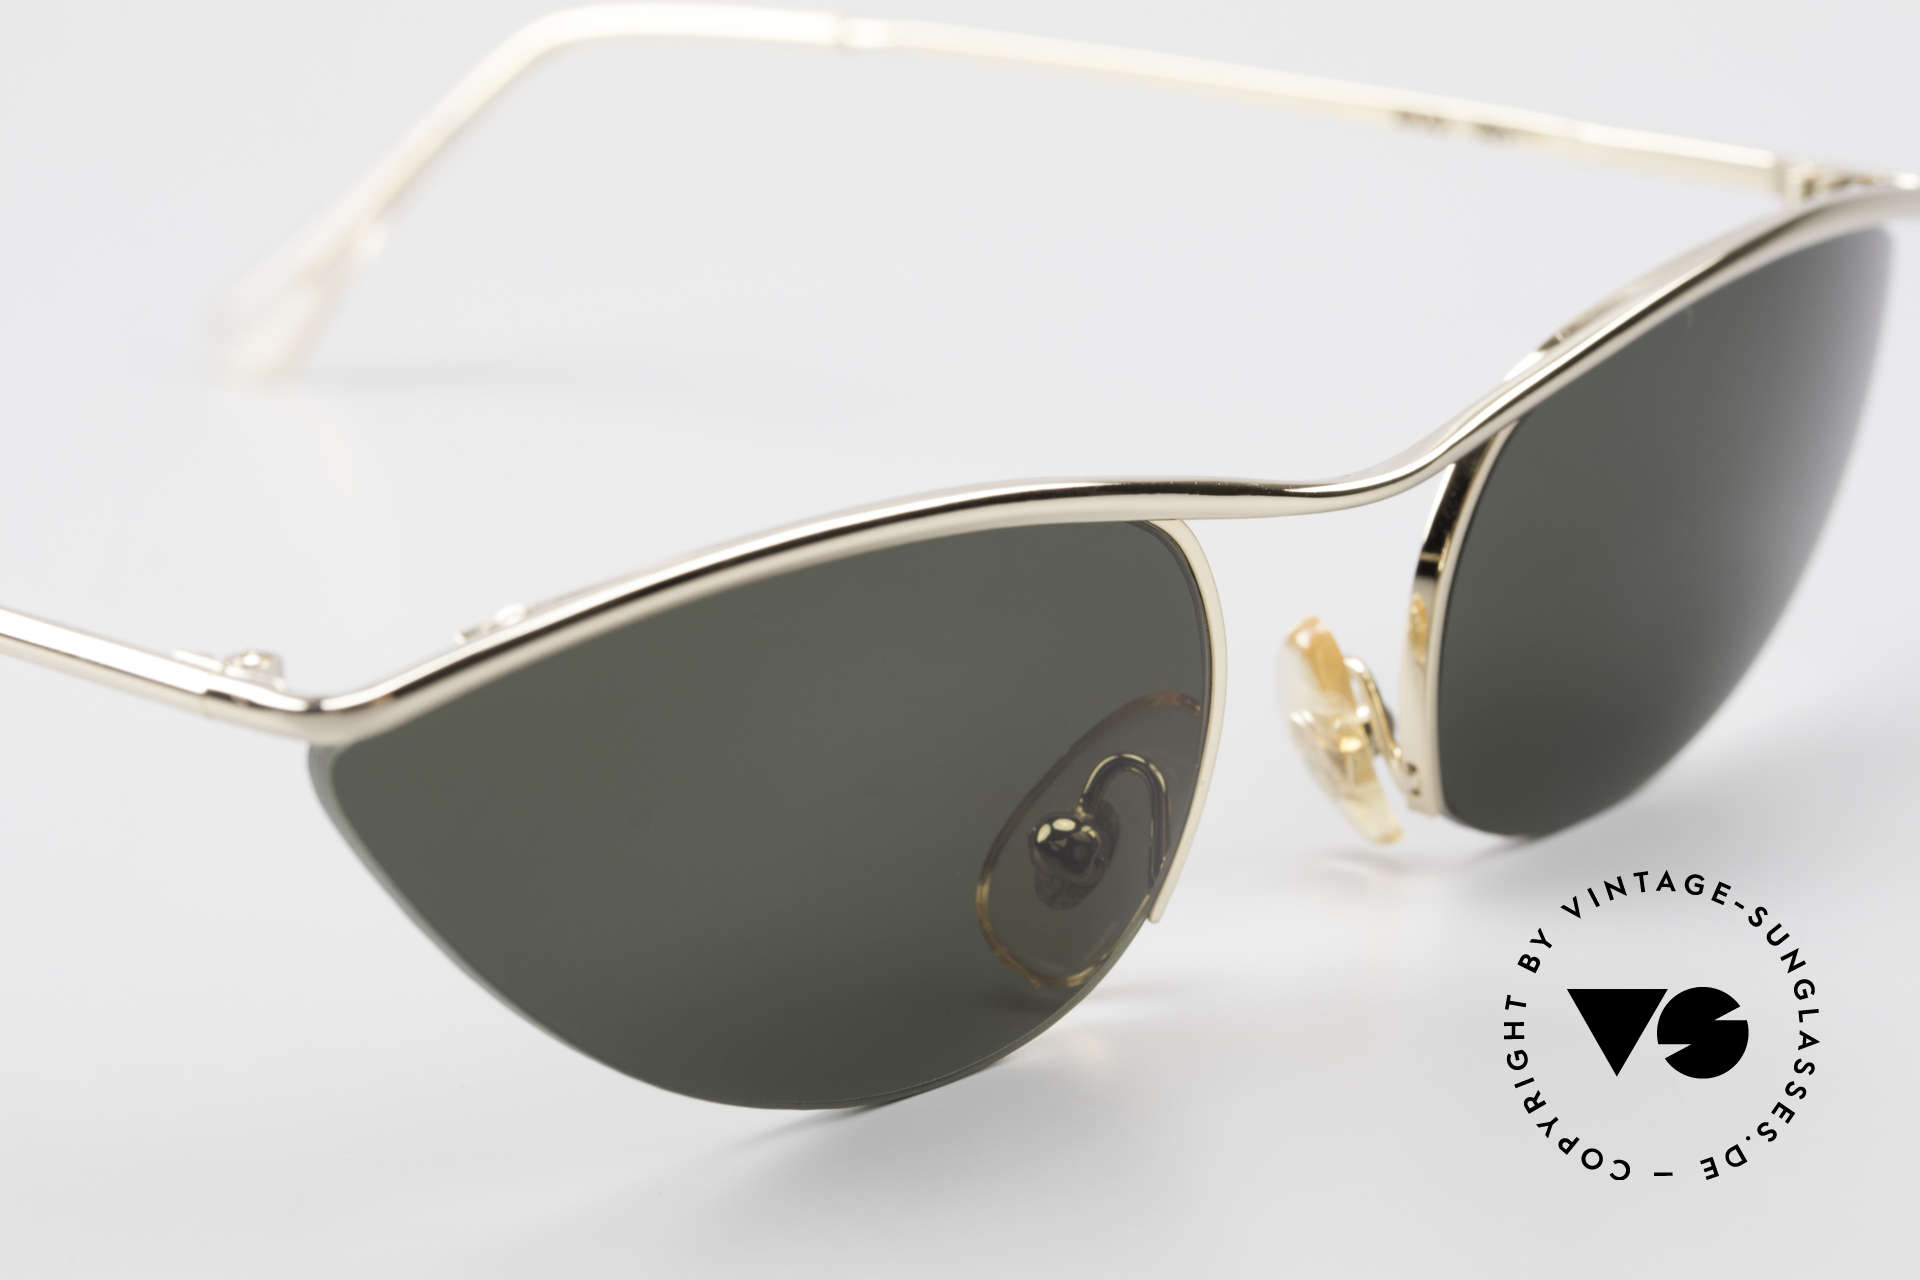 Cutler And Gross 0359 Cat Eye Designer Sunglasses, NO RETRO fashion, but a unique 20 years old Original!, Made for Women